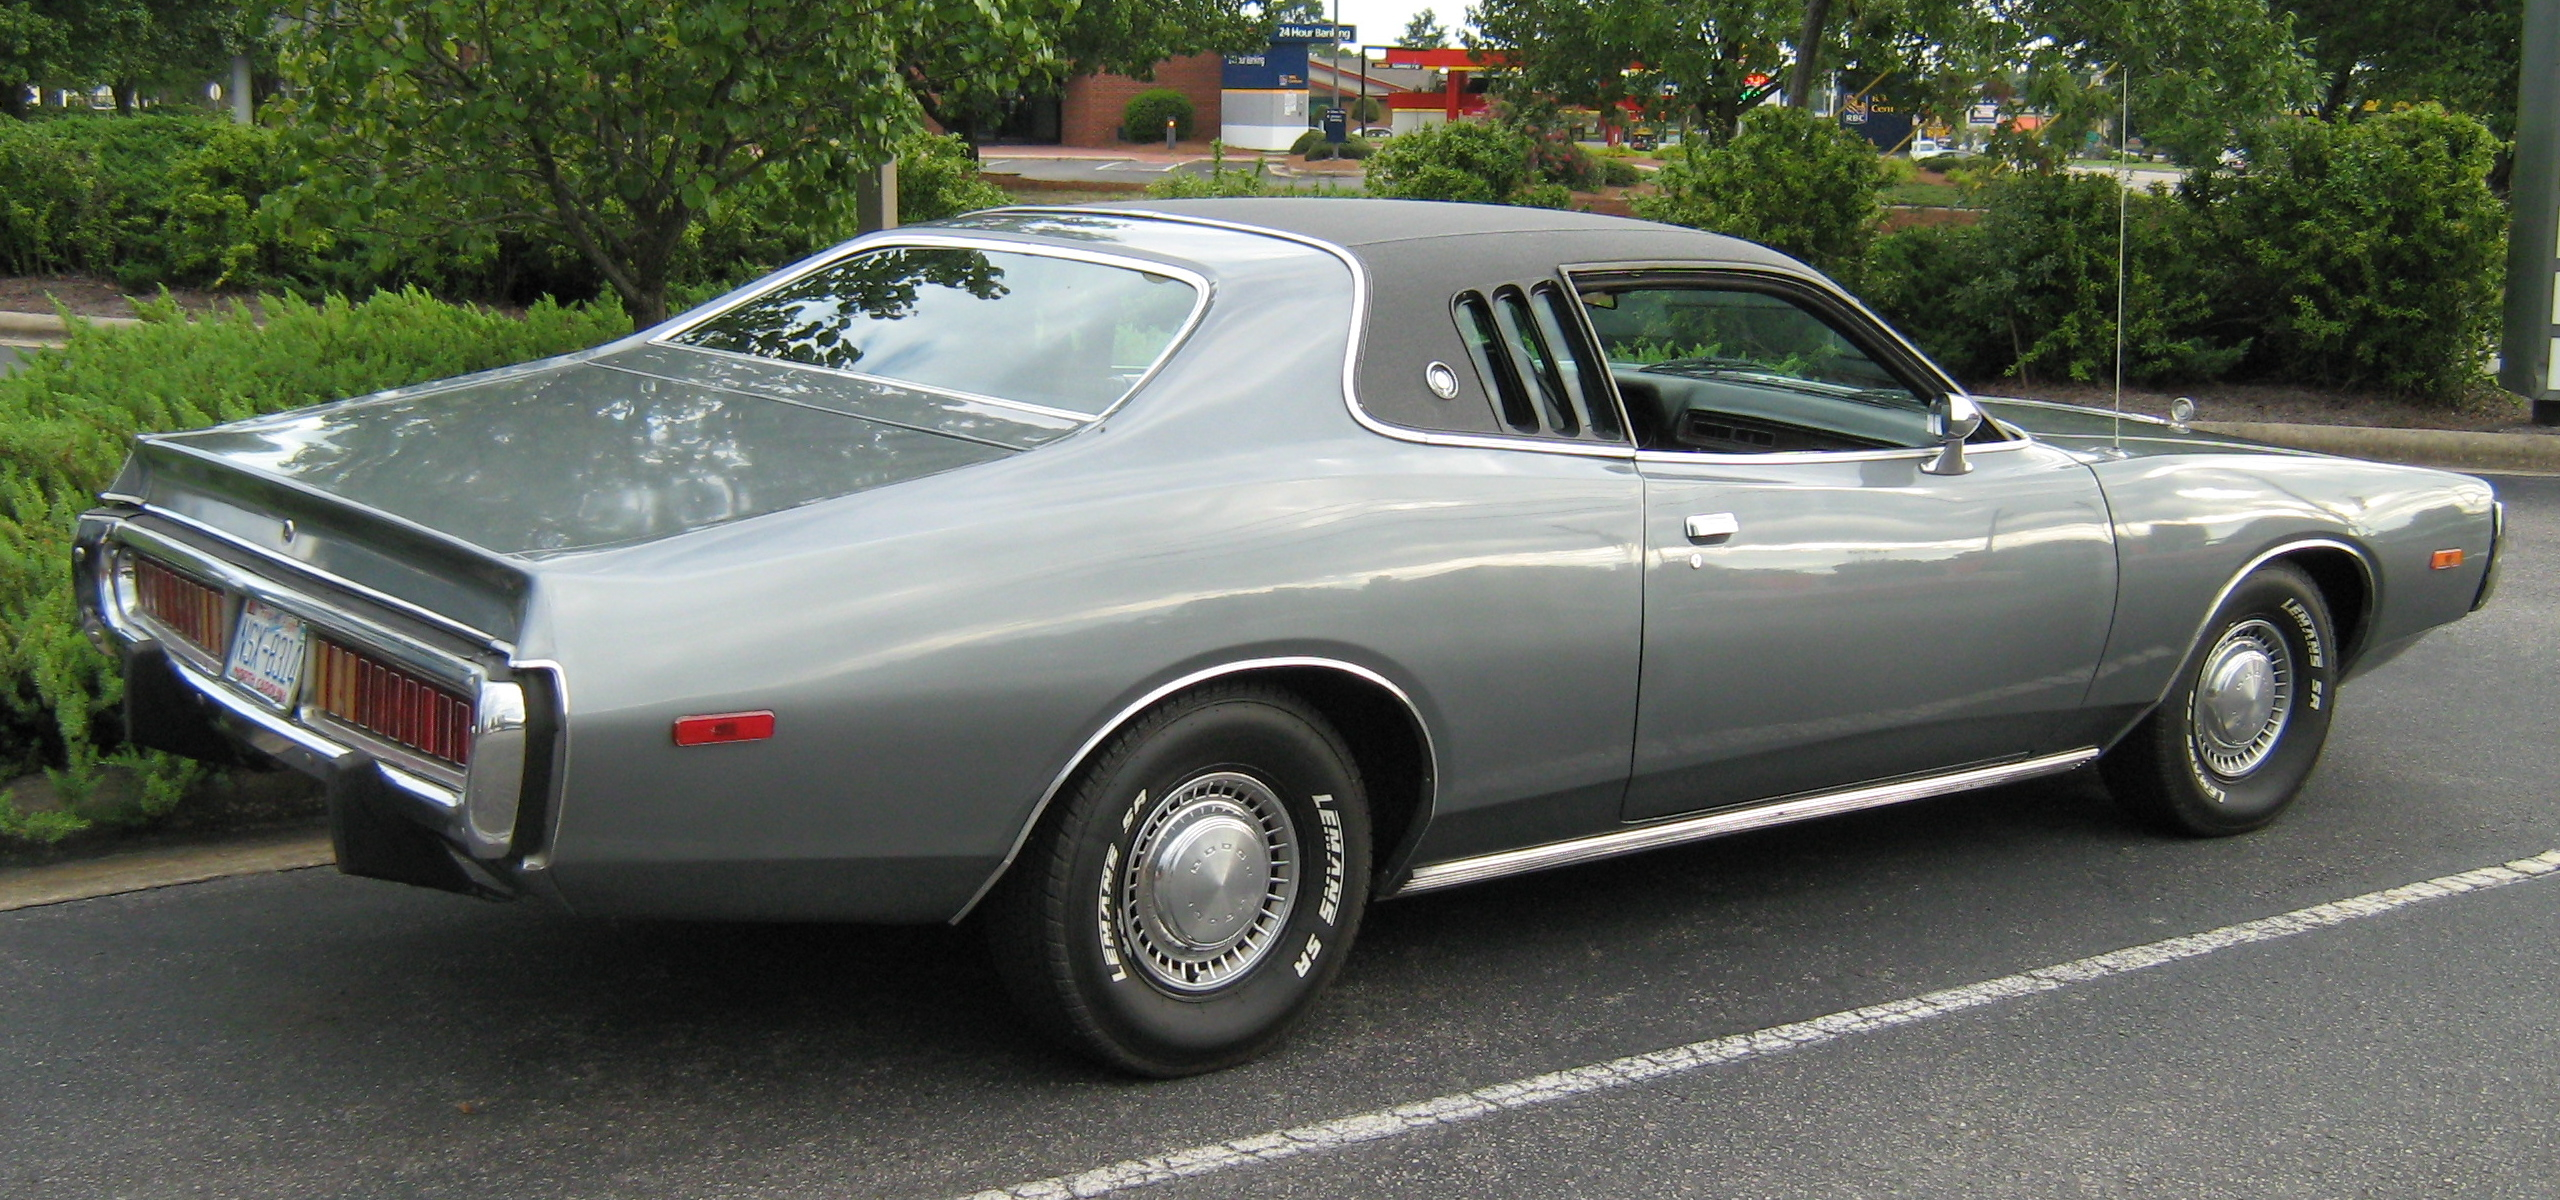 1973 Dodge Charger Information And Photos Momentcar